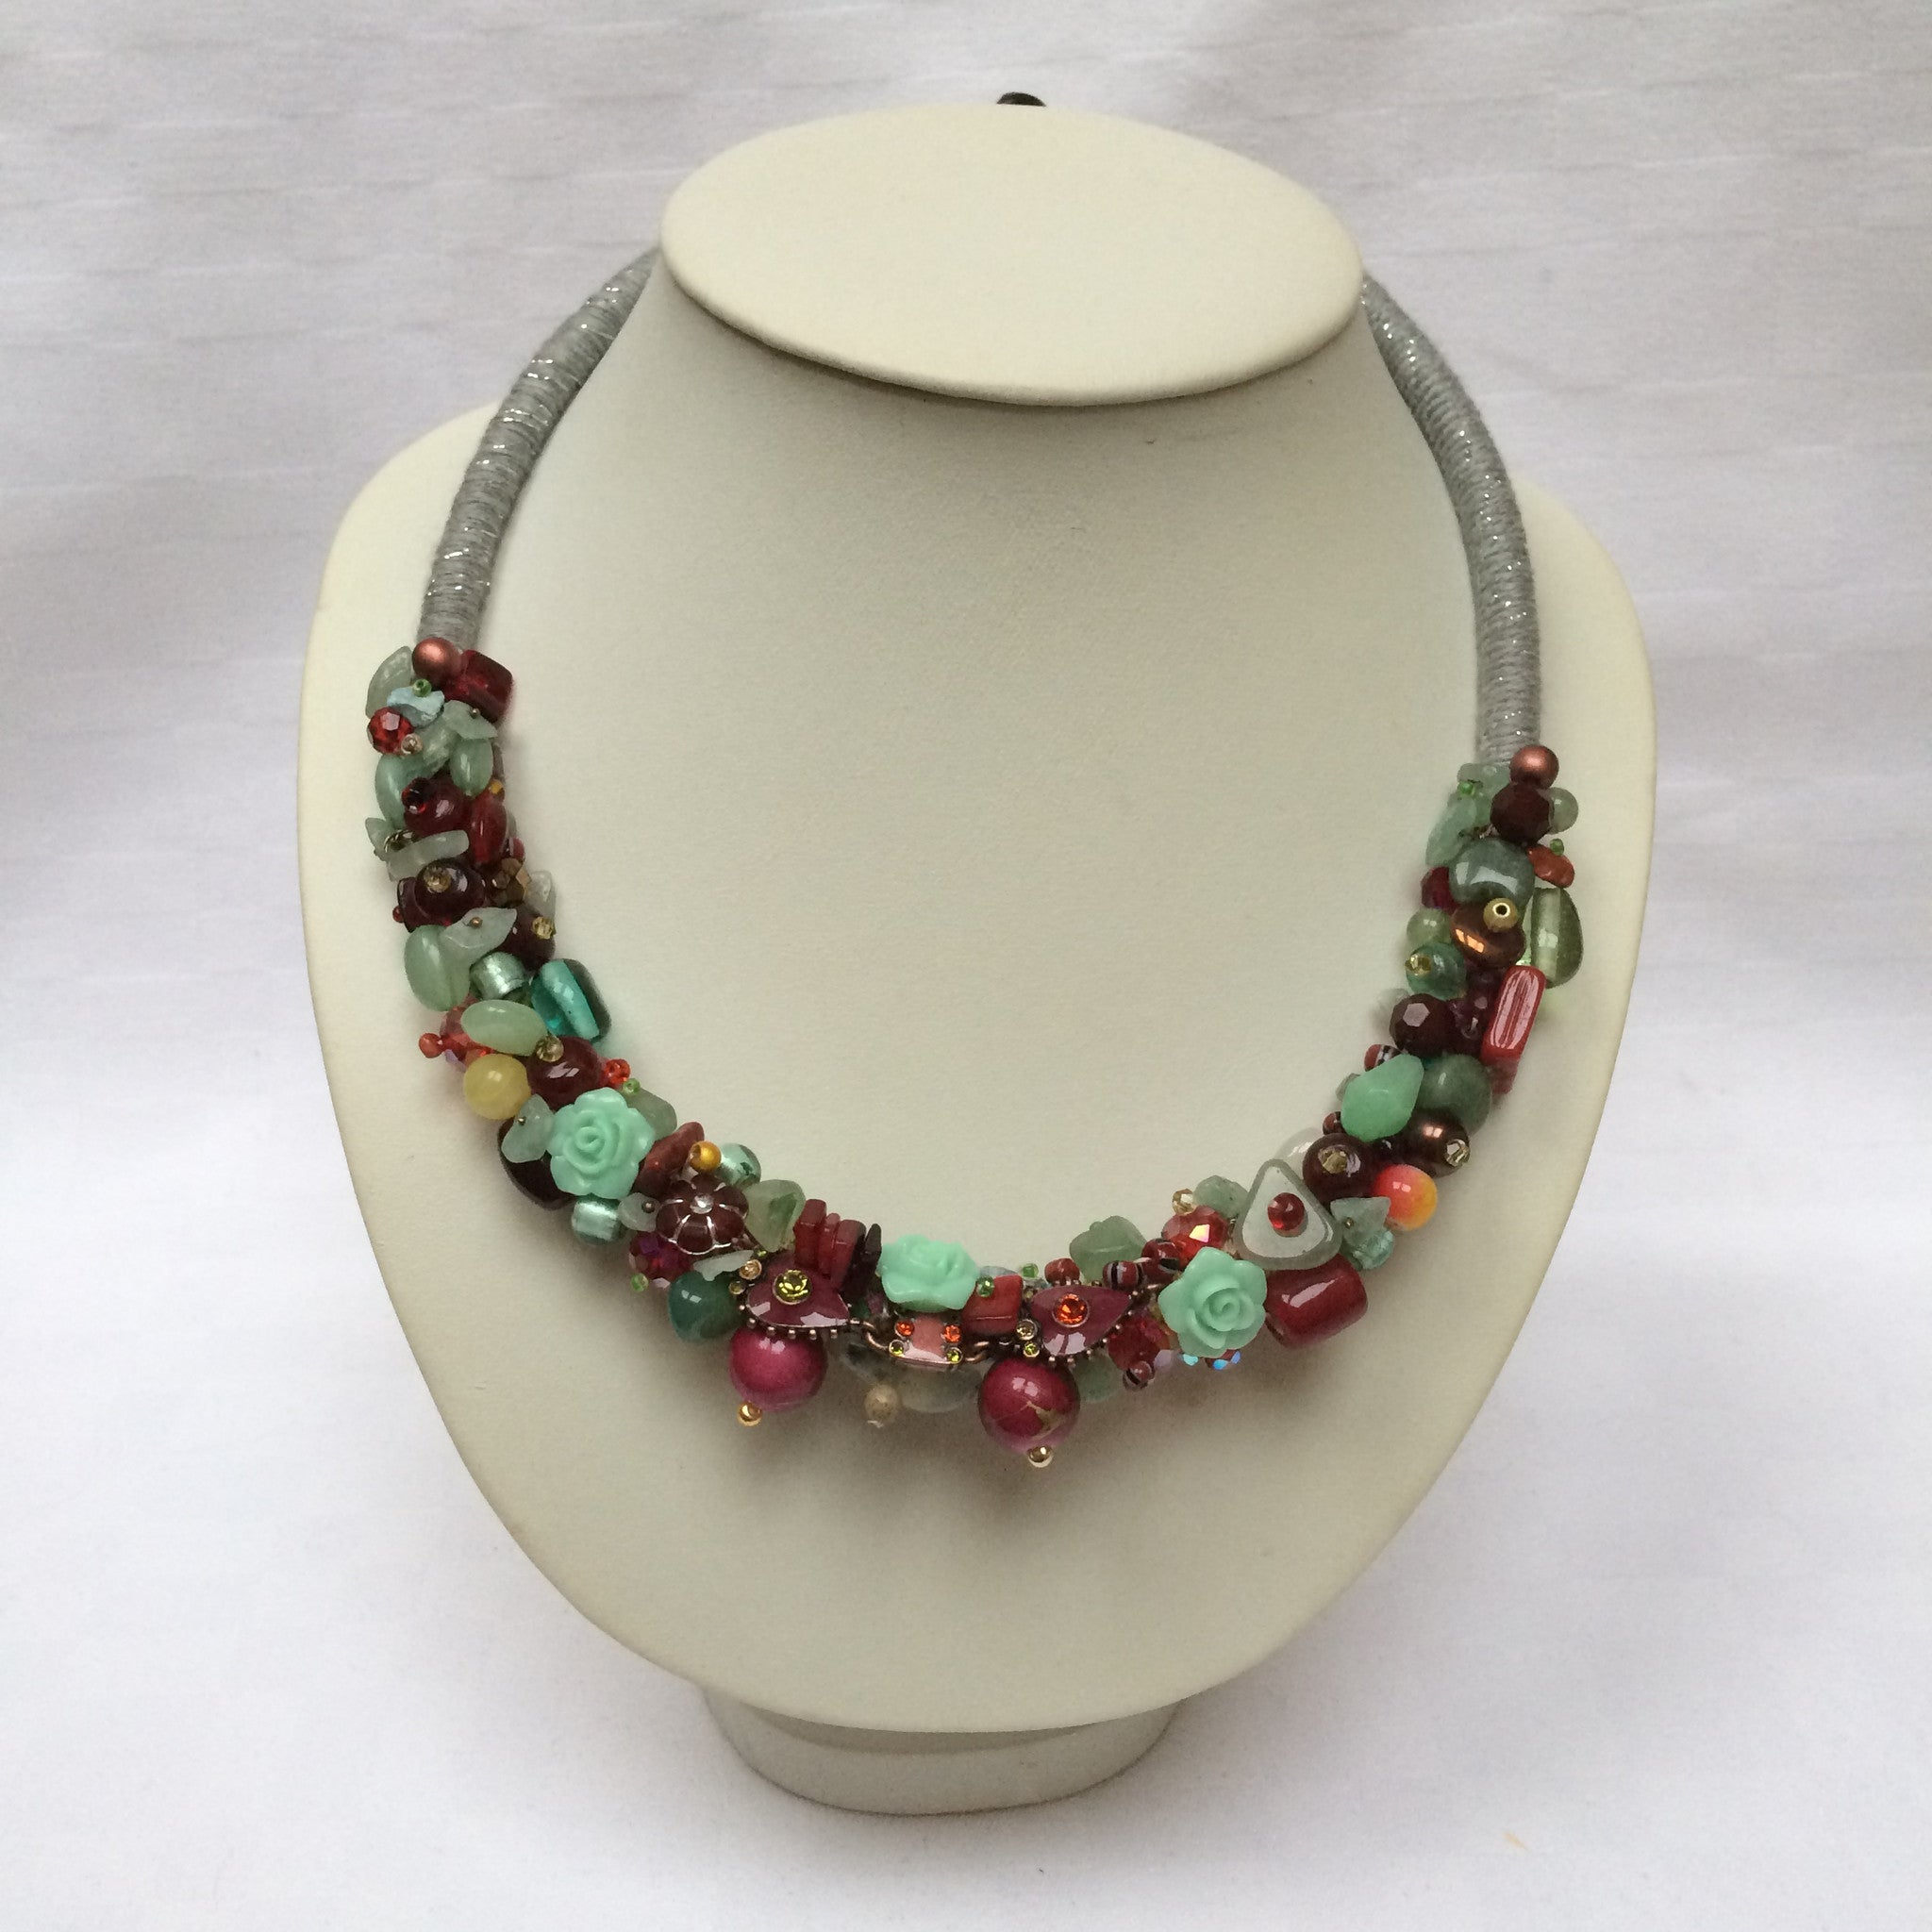 Green & Burgundy Collar necklace